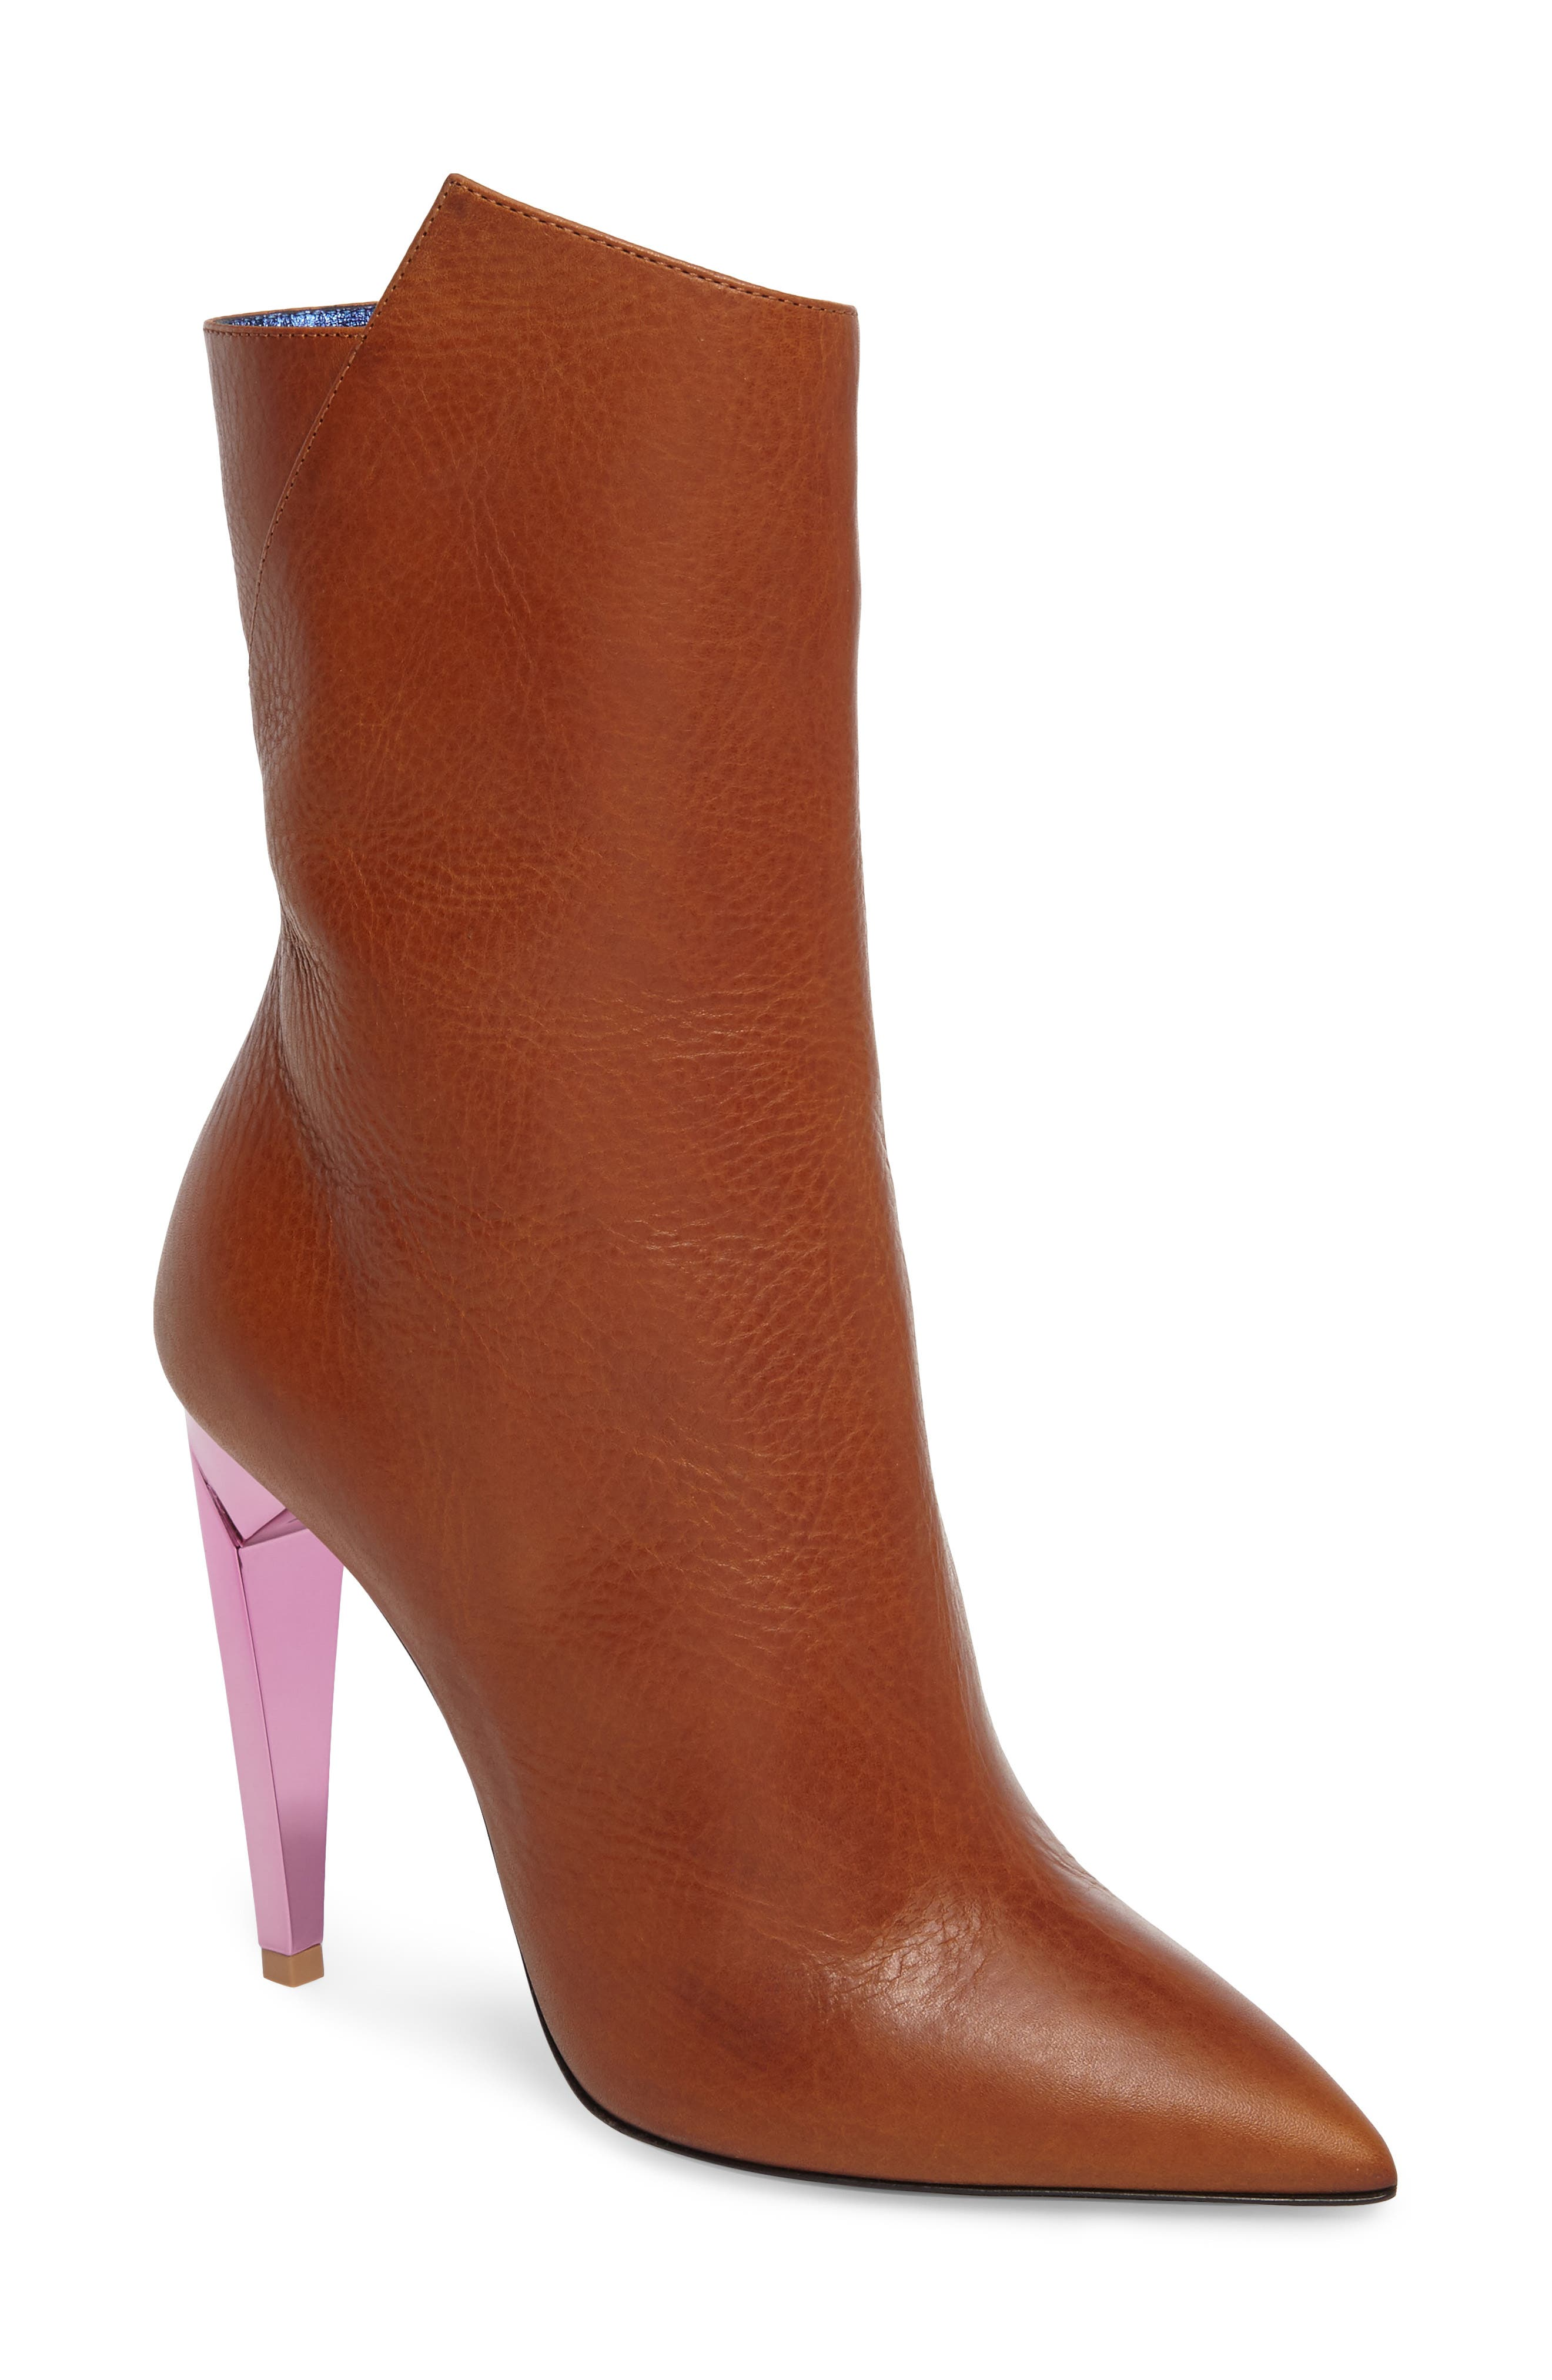 Preja Pointy Toe Bootie,                             Main thumbnail 1, color,                             200